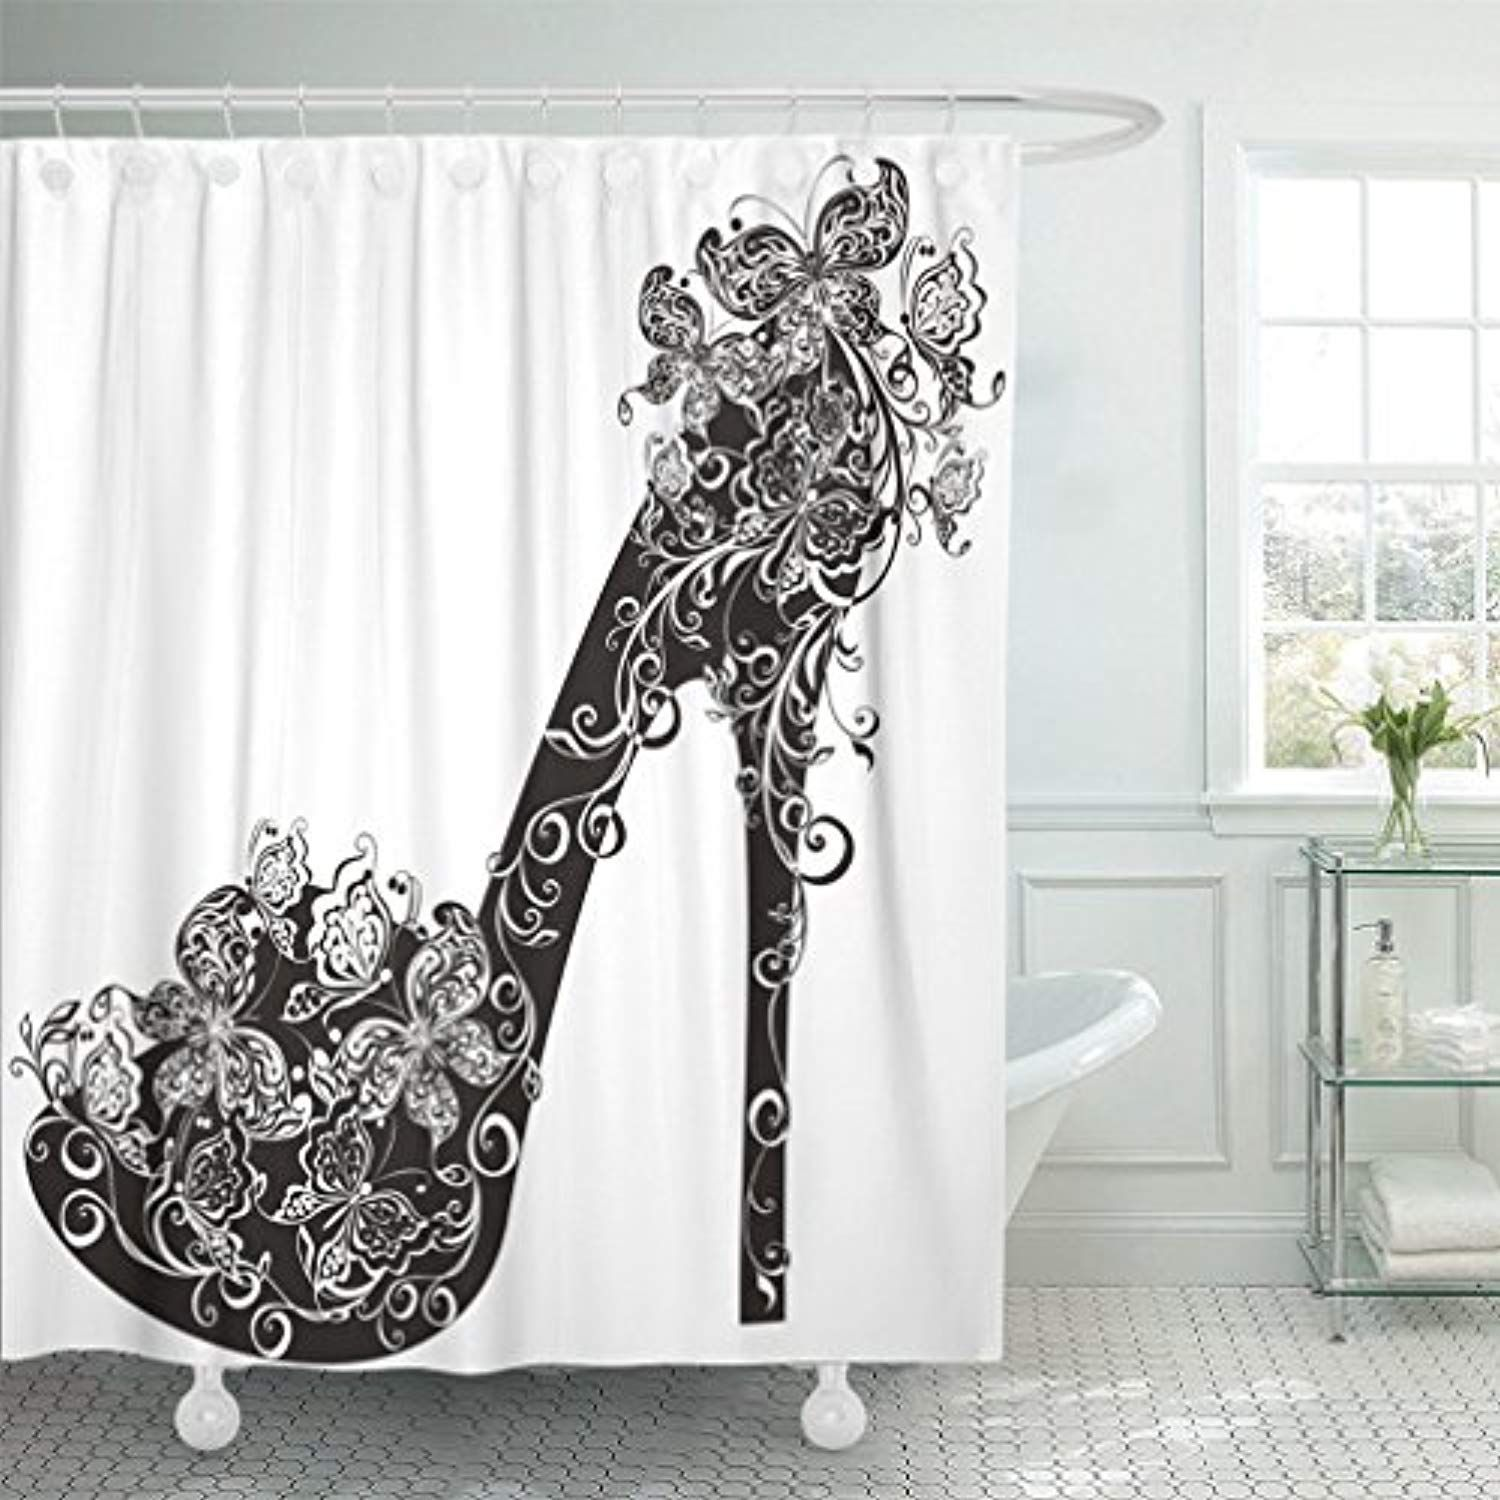 Emvency 72x72 Shower Curtain Waterproof Black Stiletto Shoes On High Heel Decorated With Flowers And Butterflies White Model Home Decor Polyester Fabric